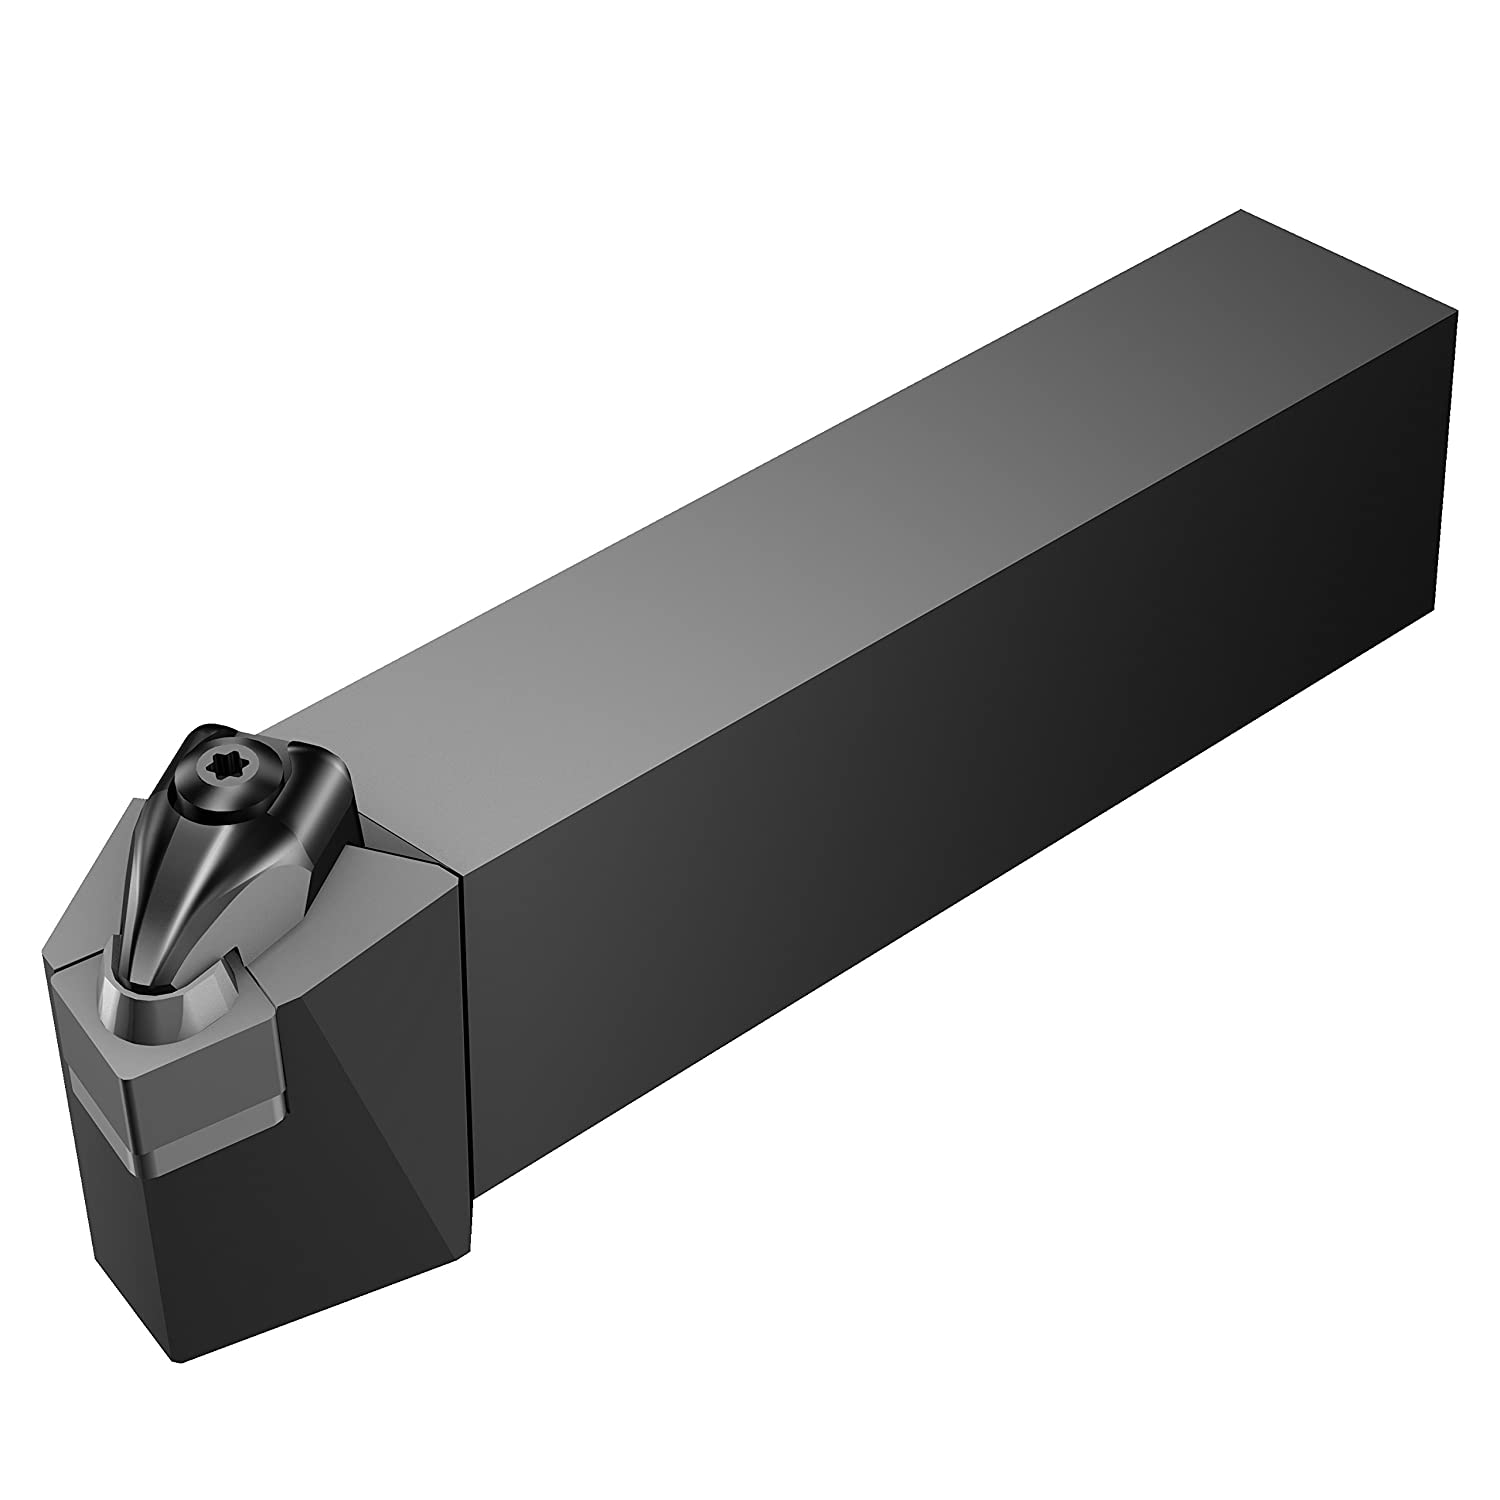 Steel Rigid Clamp External Square Shank Sandvik Coromant DSRNR 16 4DM1 Turning Insert Holder 1 Width x 1 Height Shank 6 Length x 1.04799 Width Right Hand SNMG 432 Insert Size